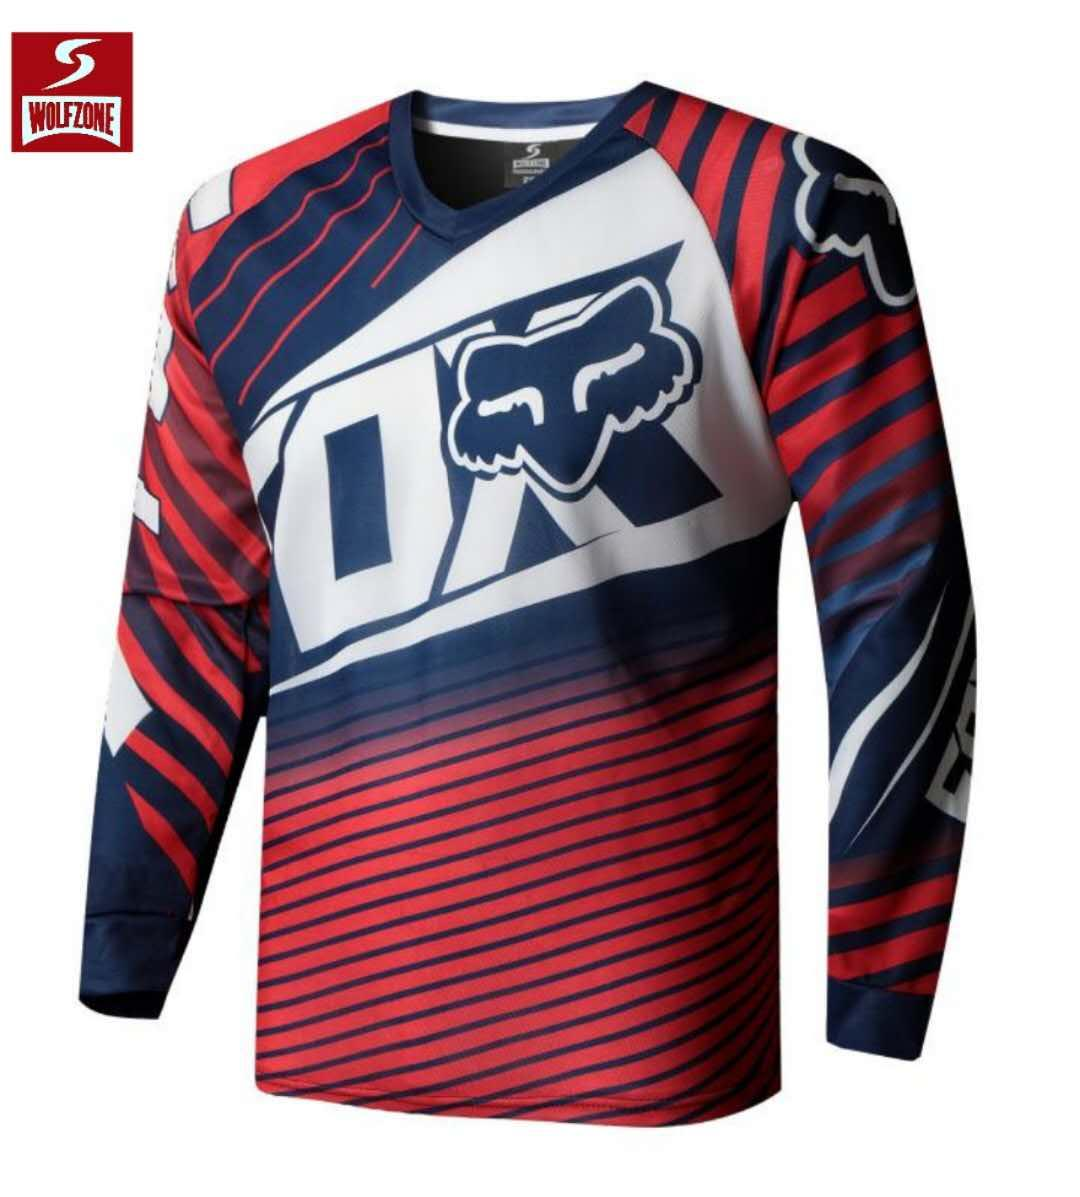 Wolf Zone Spandex Fox Longsleeve Men s Sportswear Quick DryFortress Cycling  Mountain Bike Motocross Motorcycle MTB 15c8ae6d4